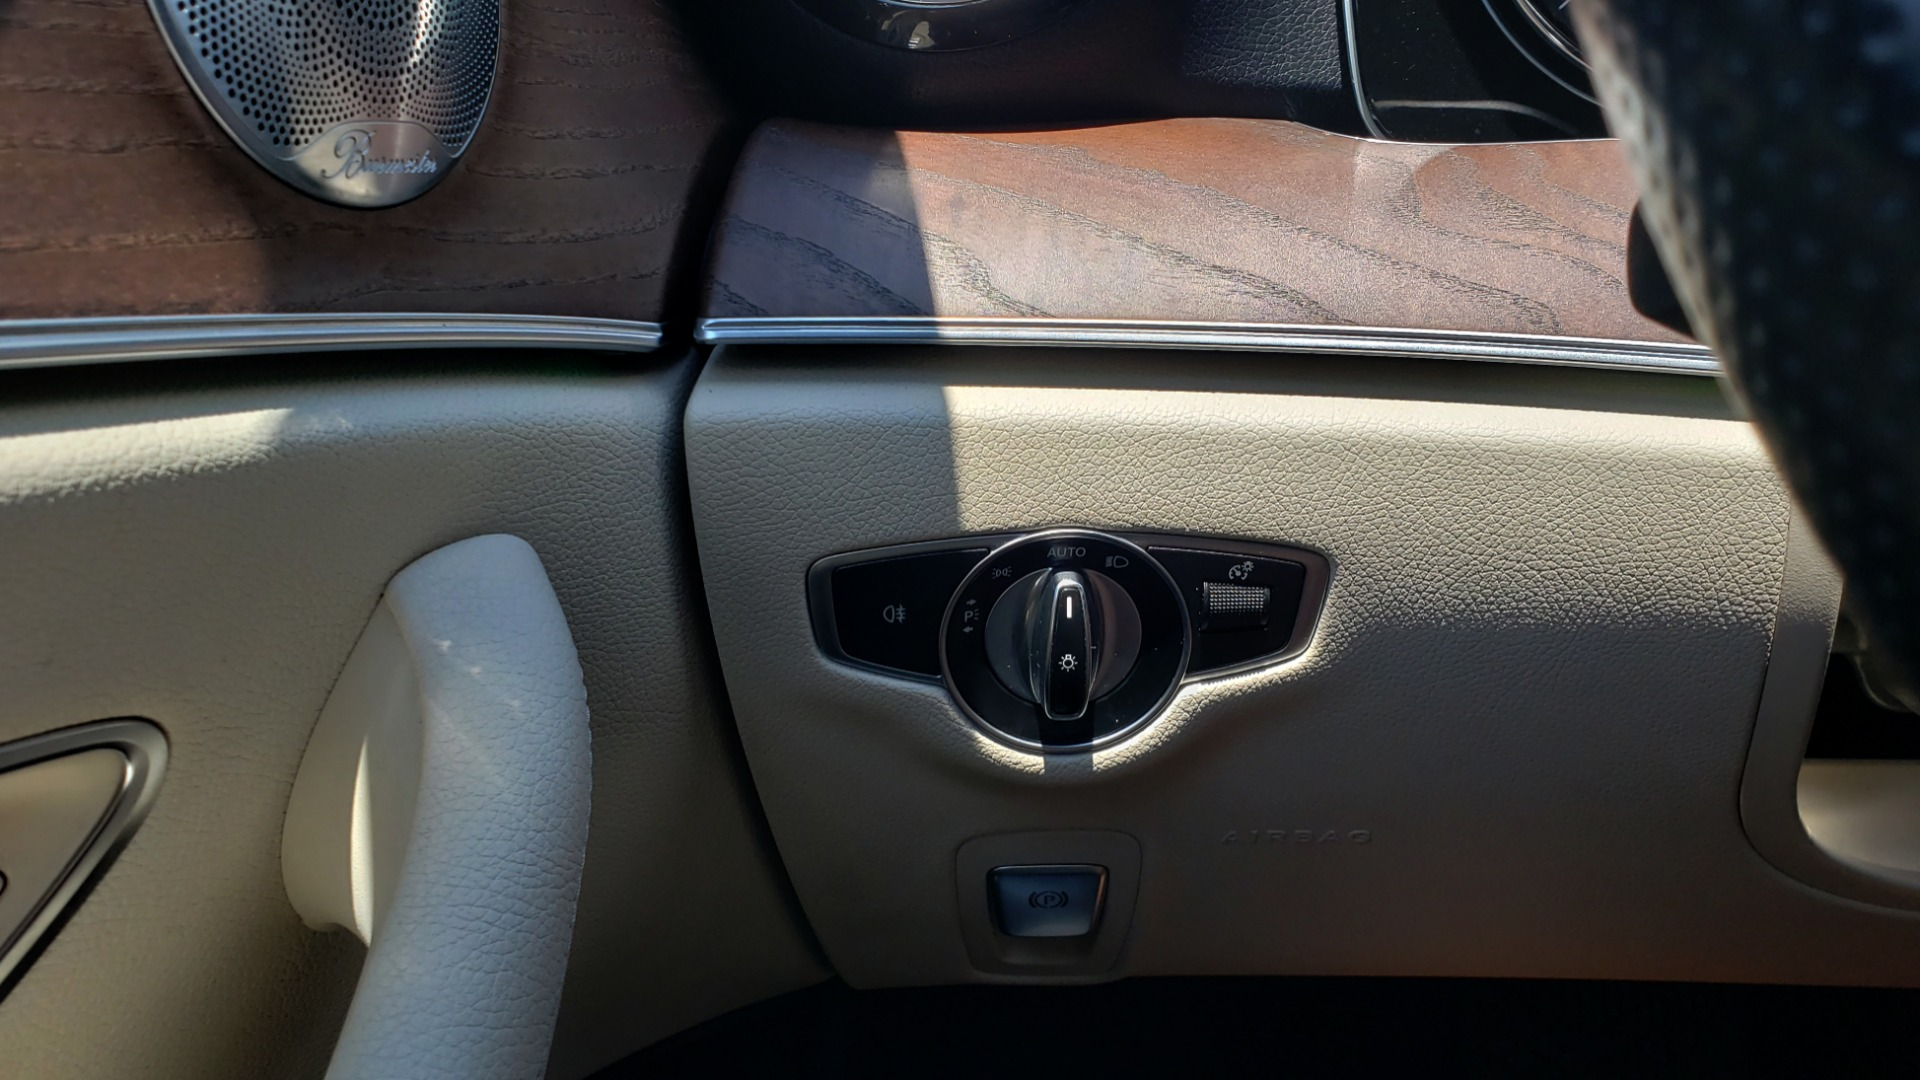 Used 2017 Mercedes-Benz E-CLASS E 300 PREMIUM / SPORT / NAV / SUNROOF / HTD STS / BSM / REARVIEW for sale $27,995 at Formula Imports in Charlotte NC 28227 36